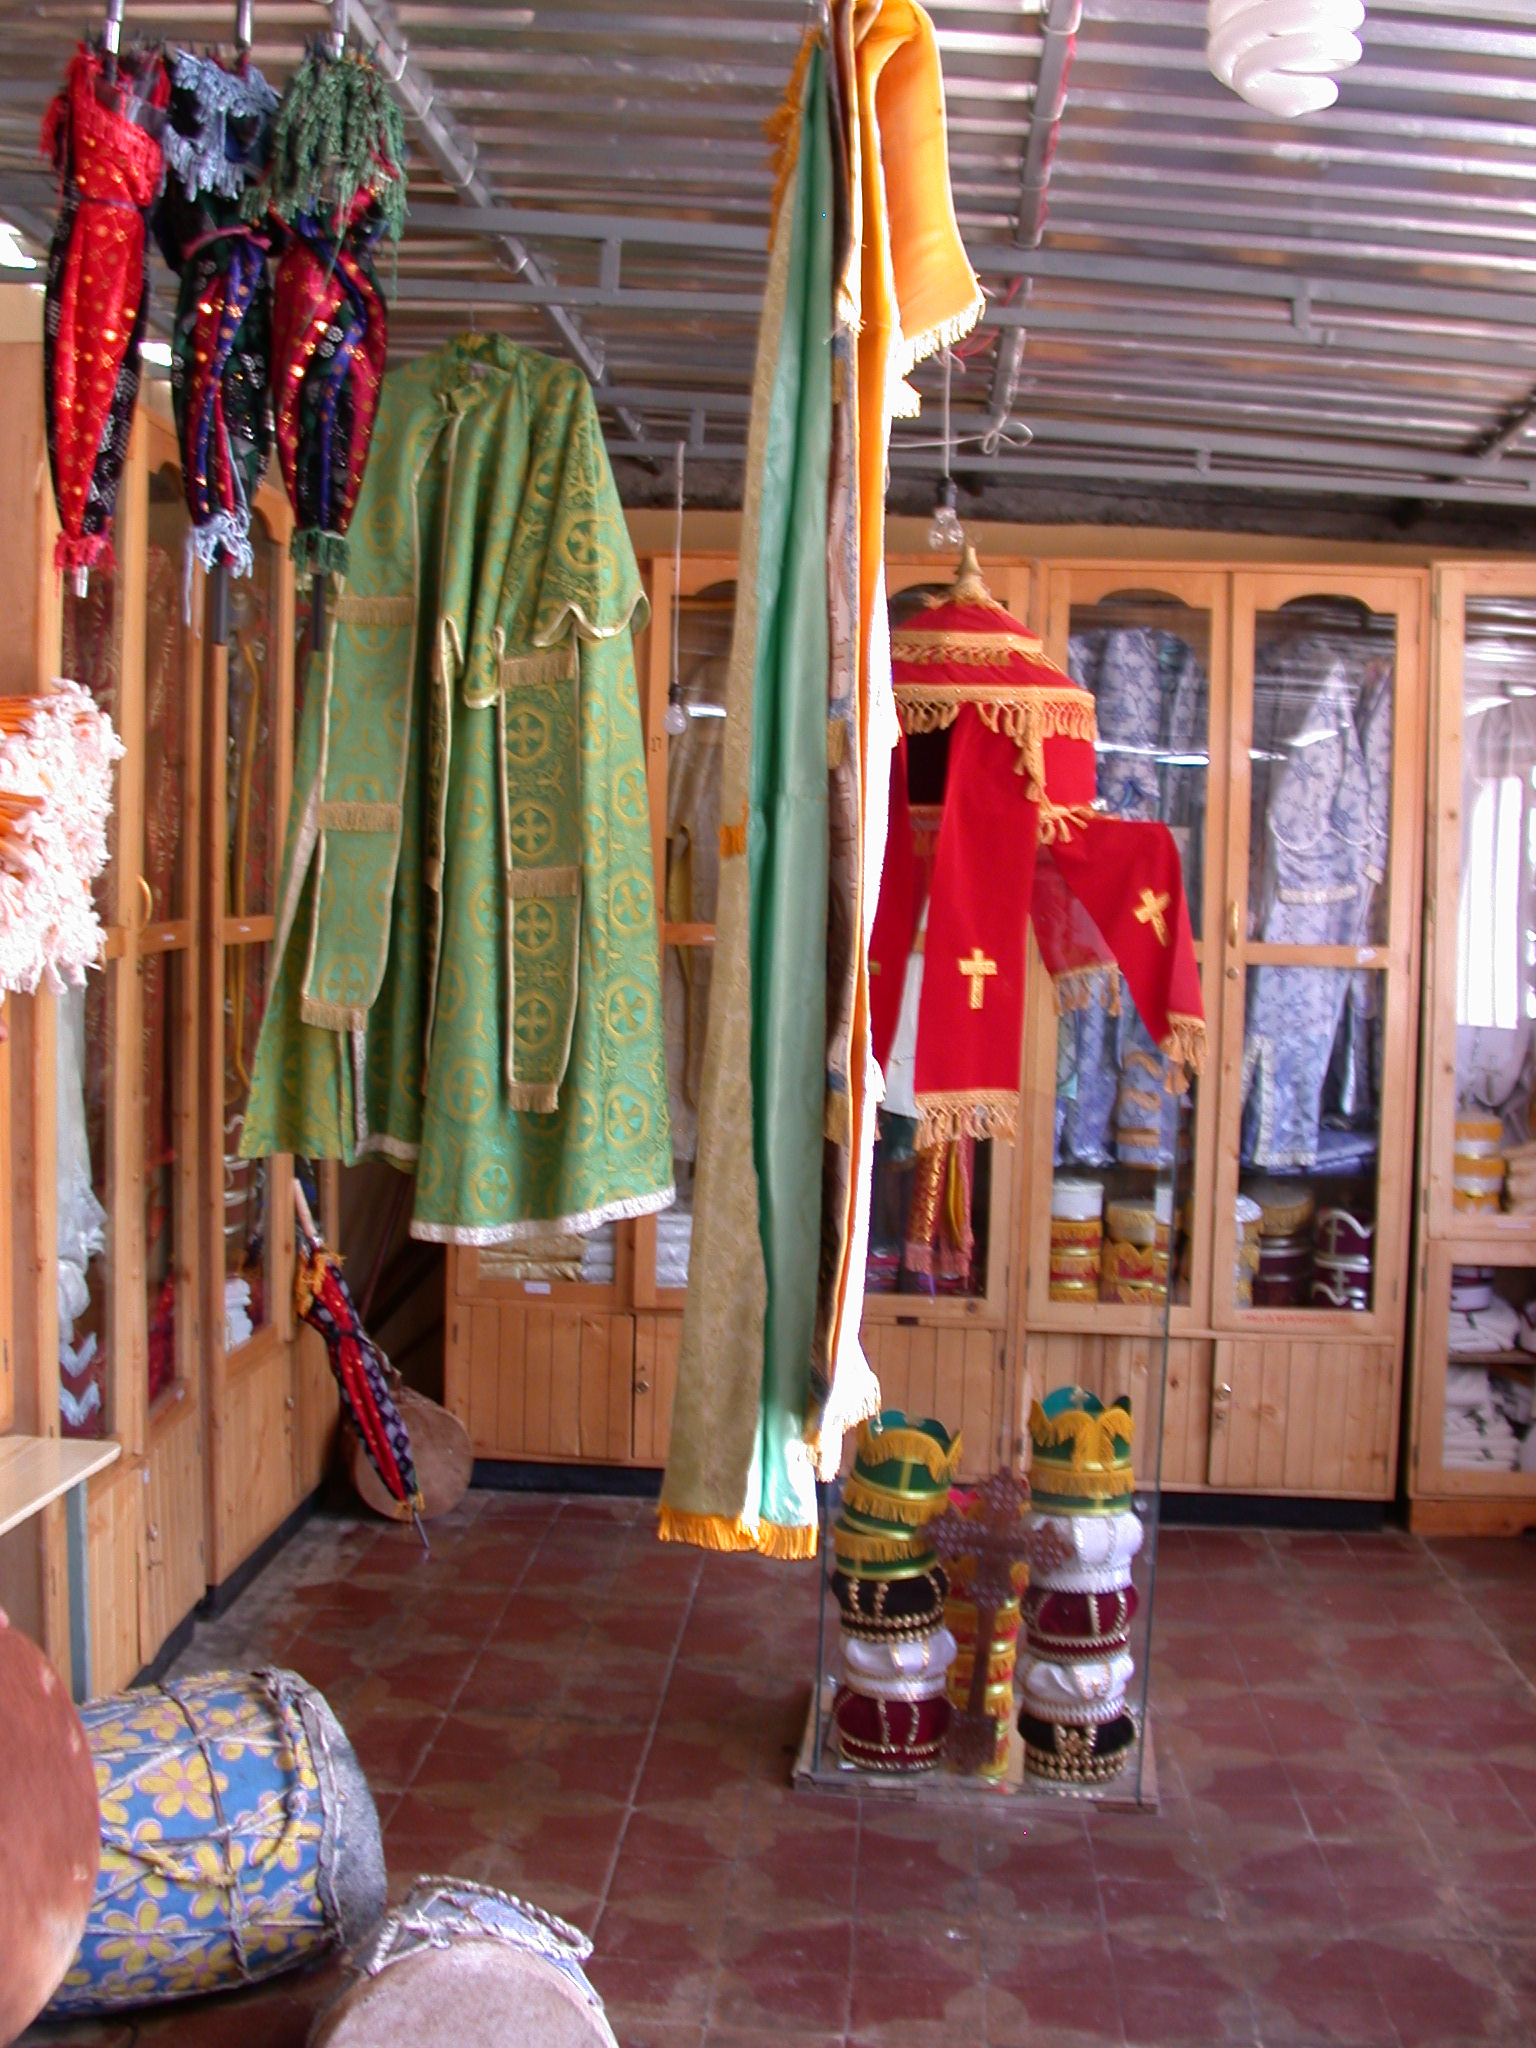 Ecclessiastical Apparel at Church Shop, Addis Ababa, Ethiopia